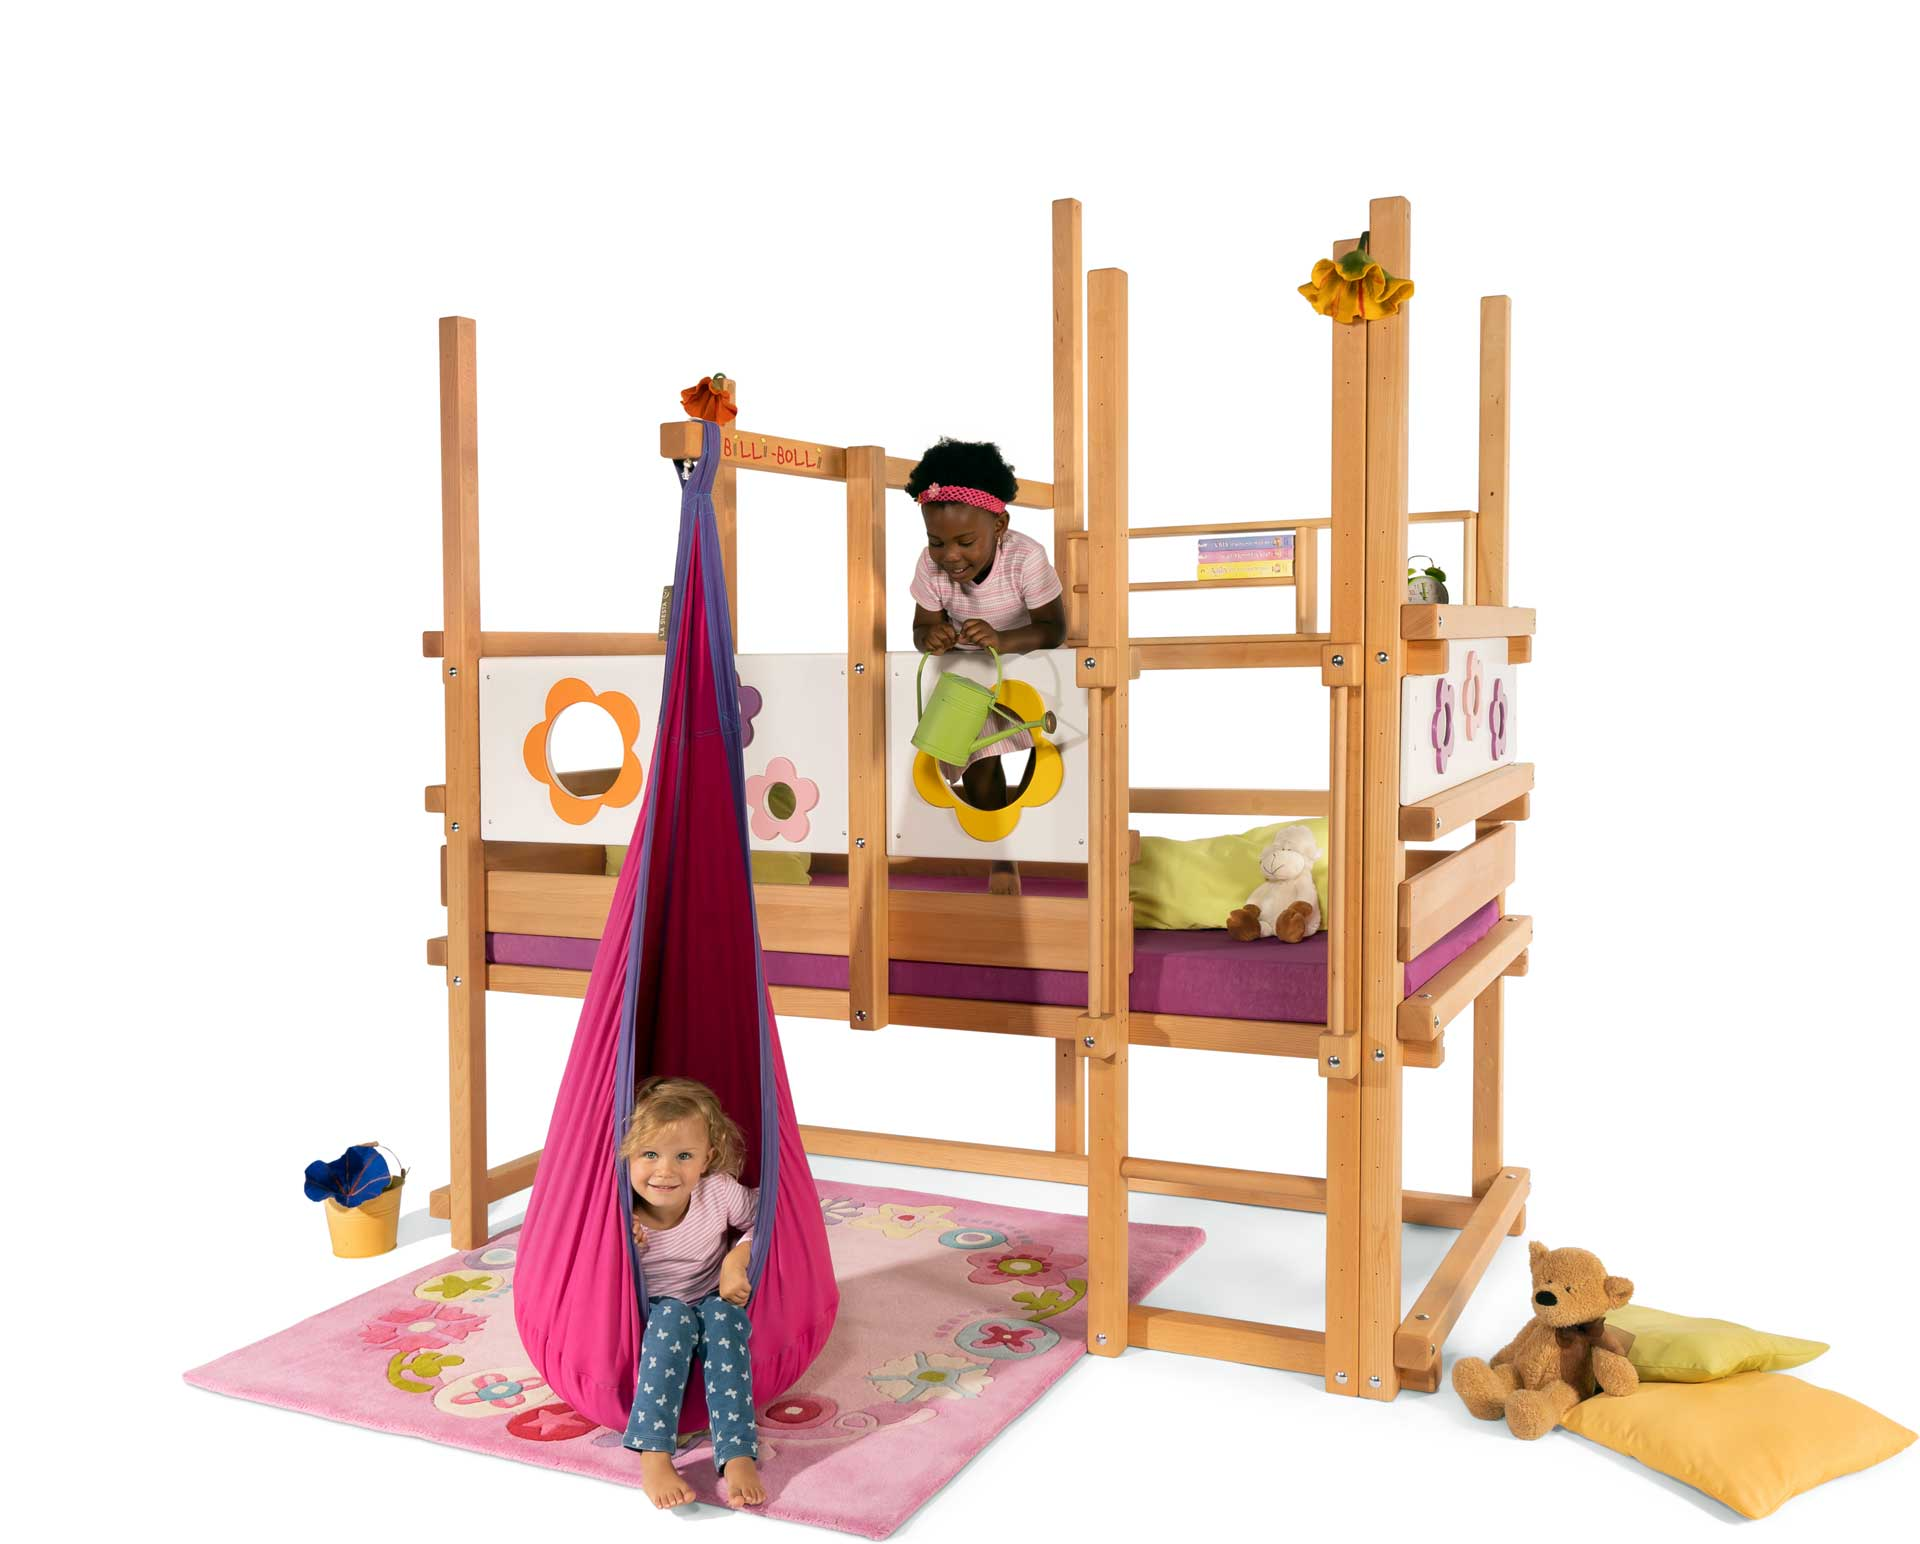 Loft Bed Adjustable By Age For Kids Buy Online Billi Bolli